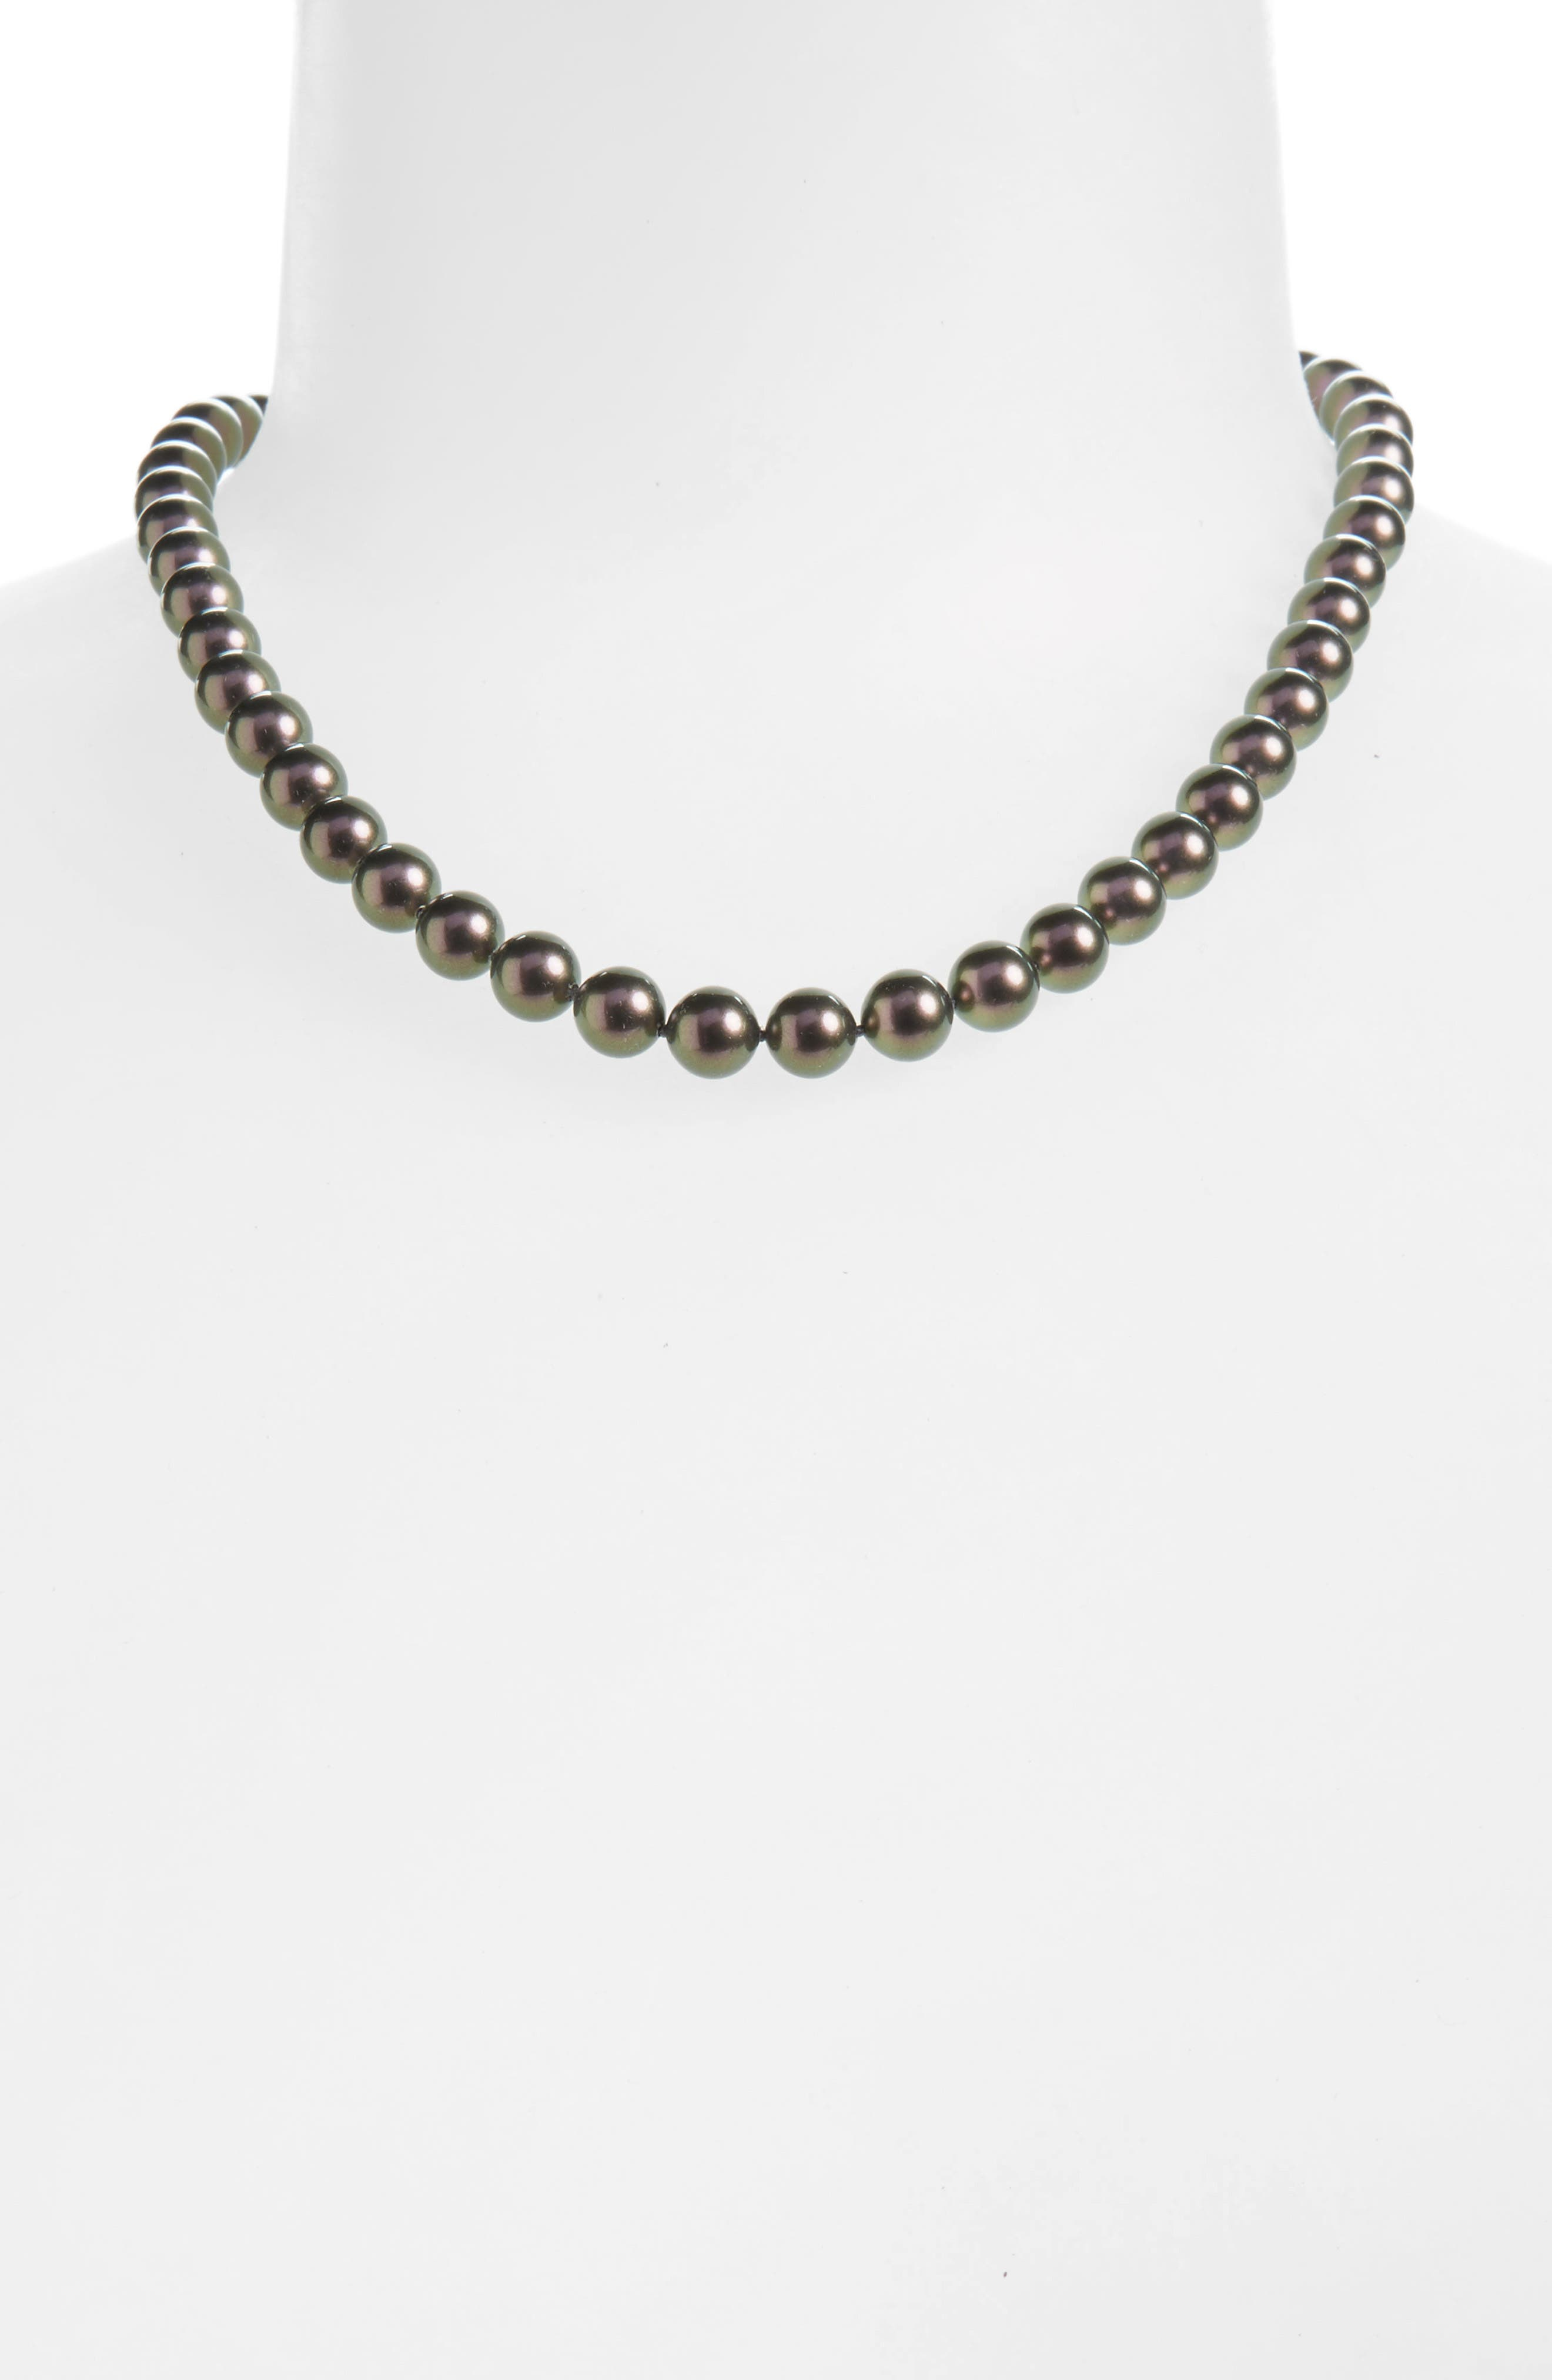 8mm Round Simulated Pearl Strand Necklace,                             Alternate thumbnail 2, color,                             Grey